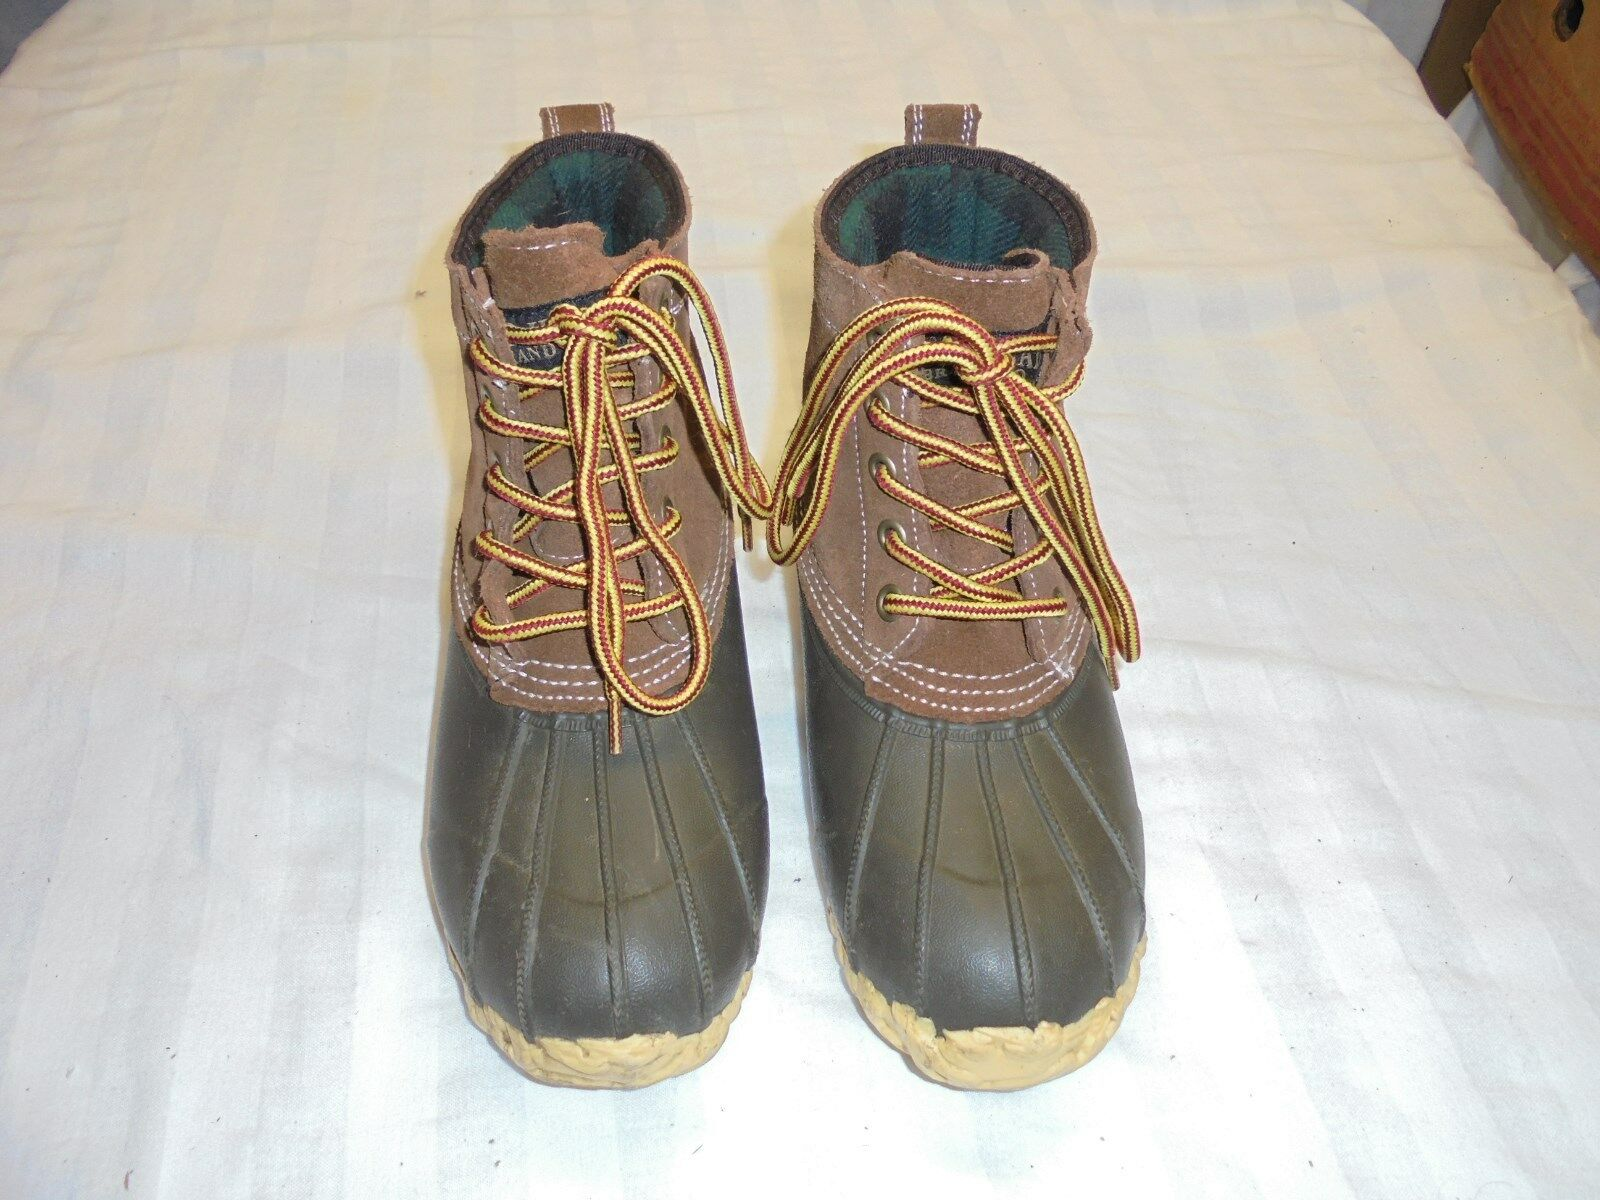 RedHead Insulated Boots Leather / Rubber Duck Snow Hunting Boots Insulated WOMENS SZ 6 ace12e